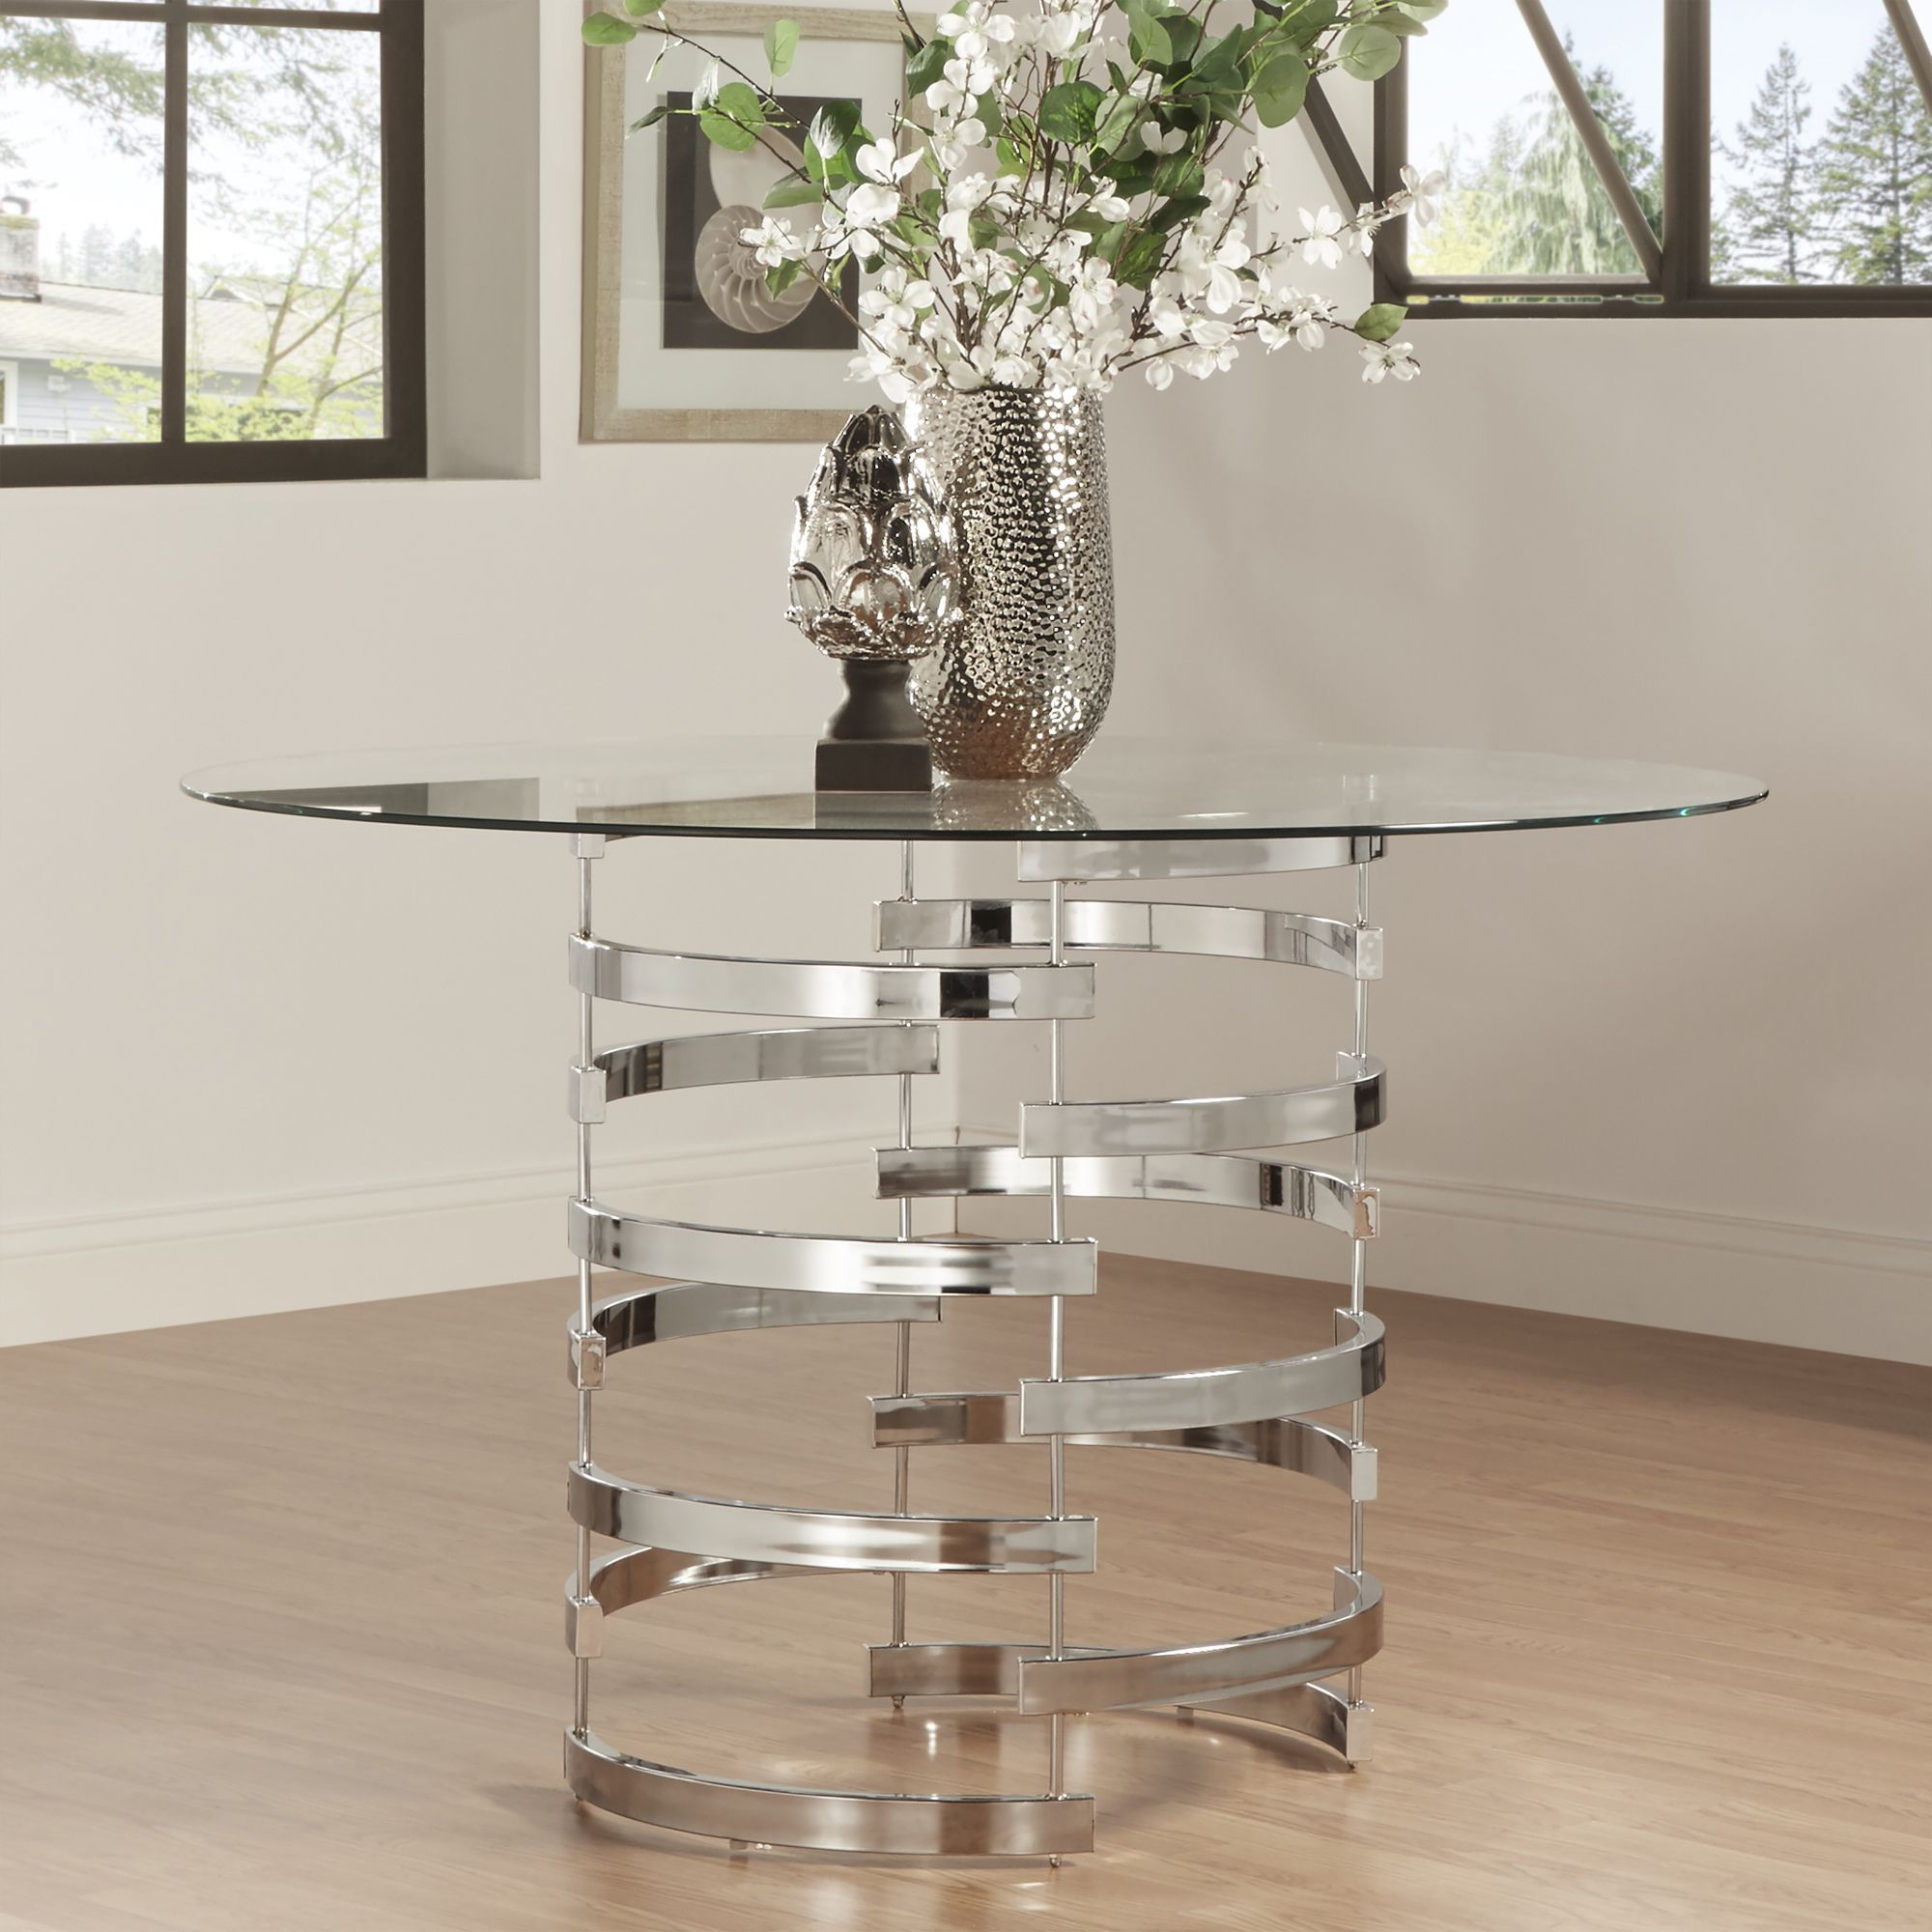 bases for dining room tables | Nova Round Glass Top Vortex Iron Base Dining Table by ...